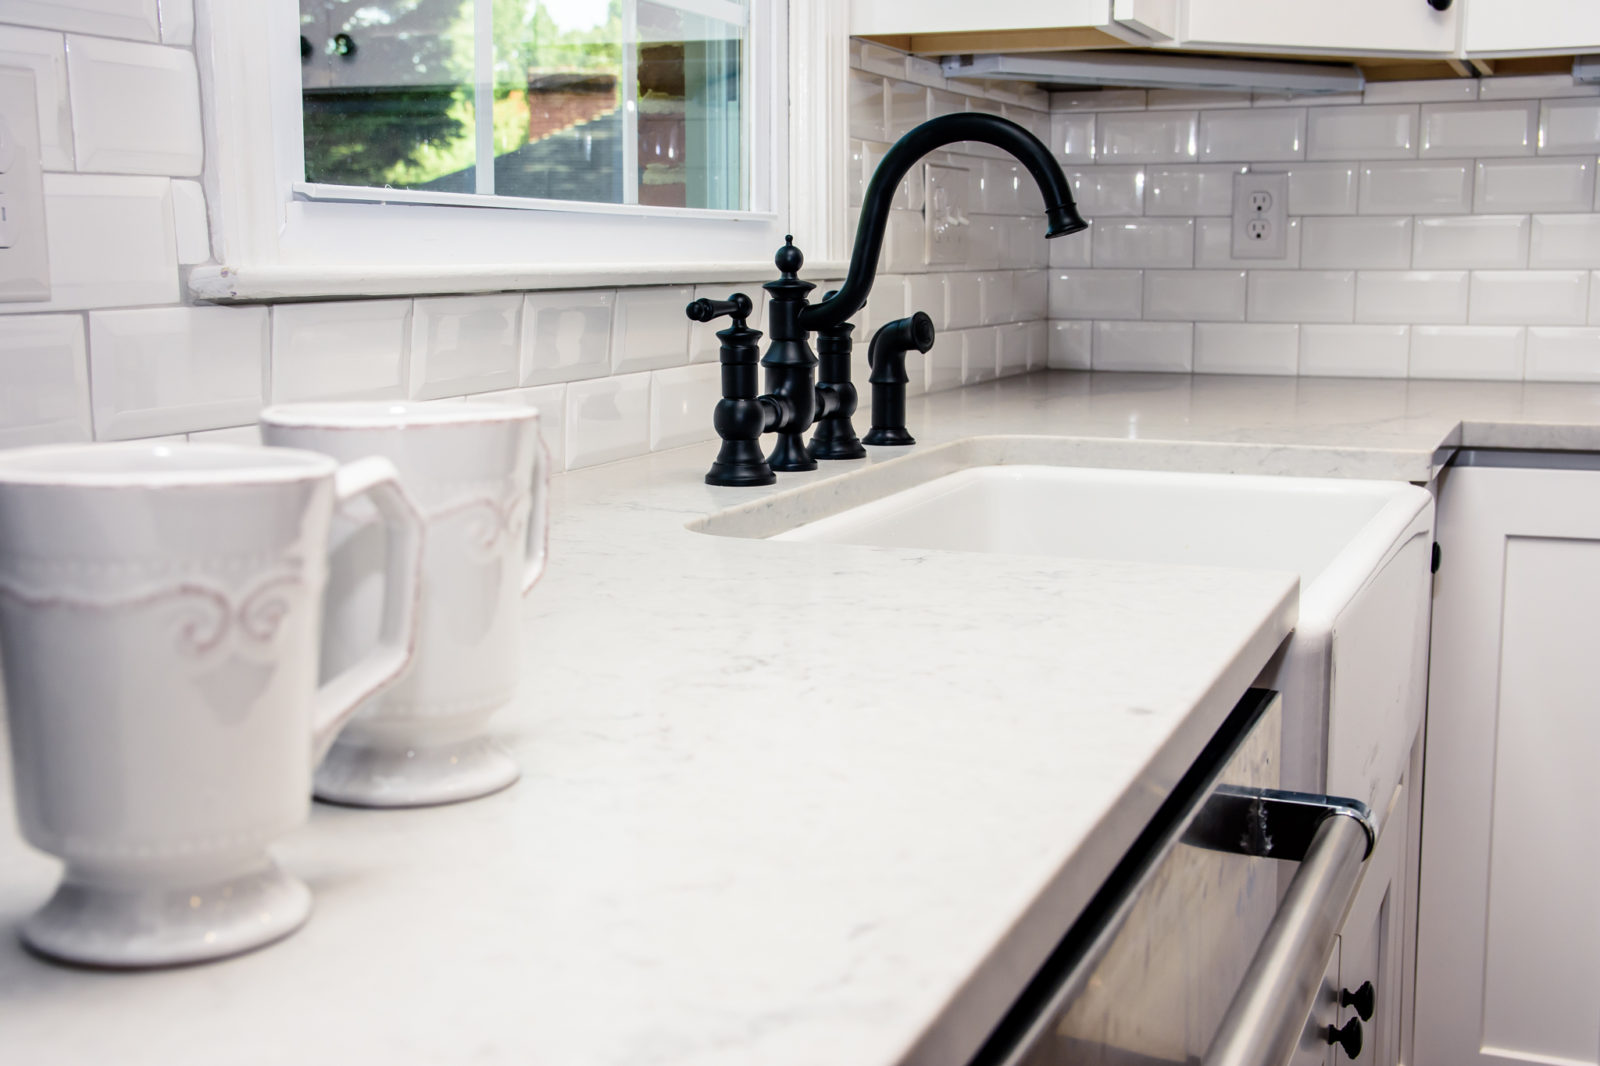 Murray Kitchen, black sink nozzle and knobs